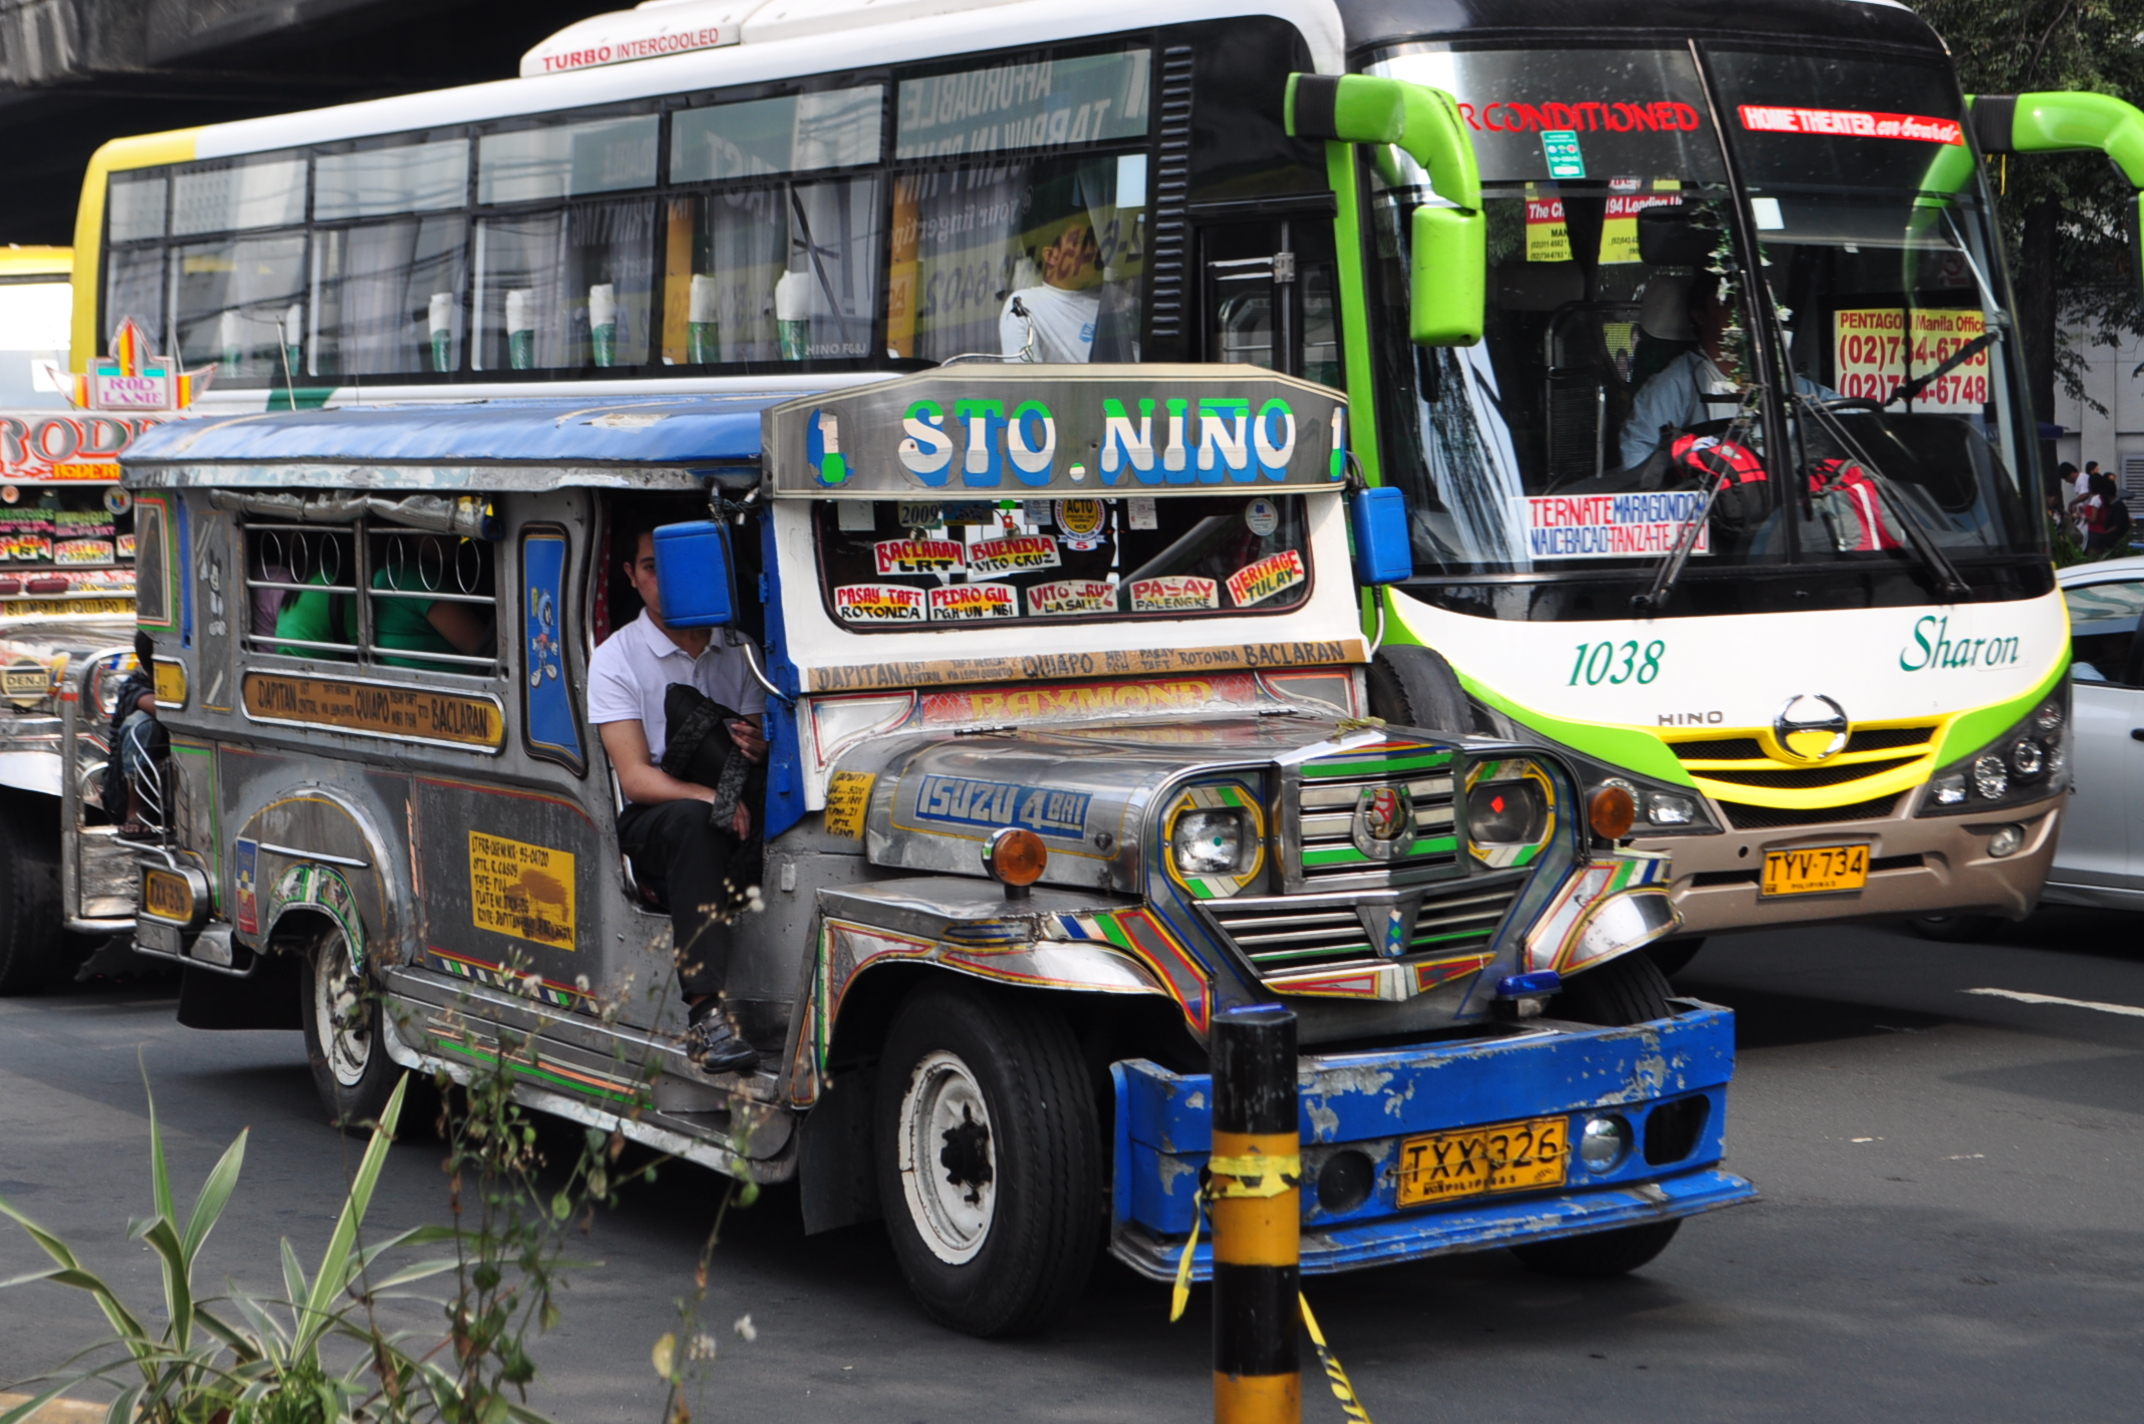 Blue and white jeepney with a green and white bus behind it